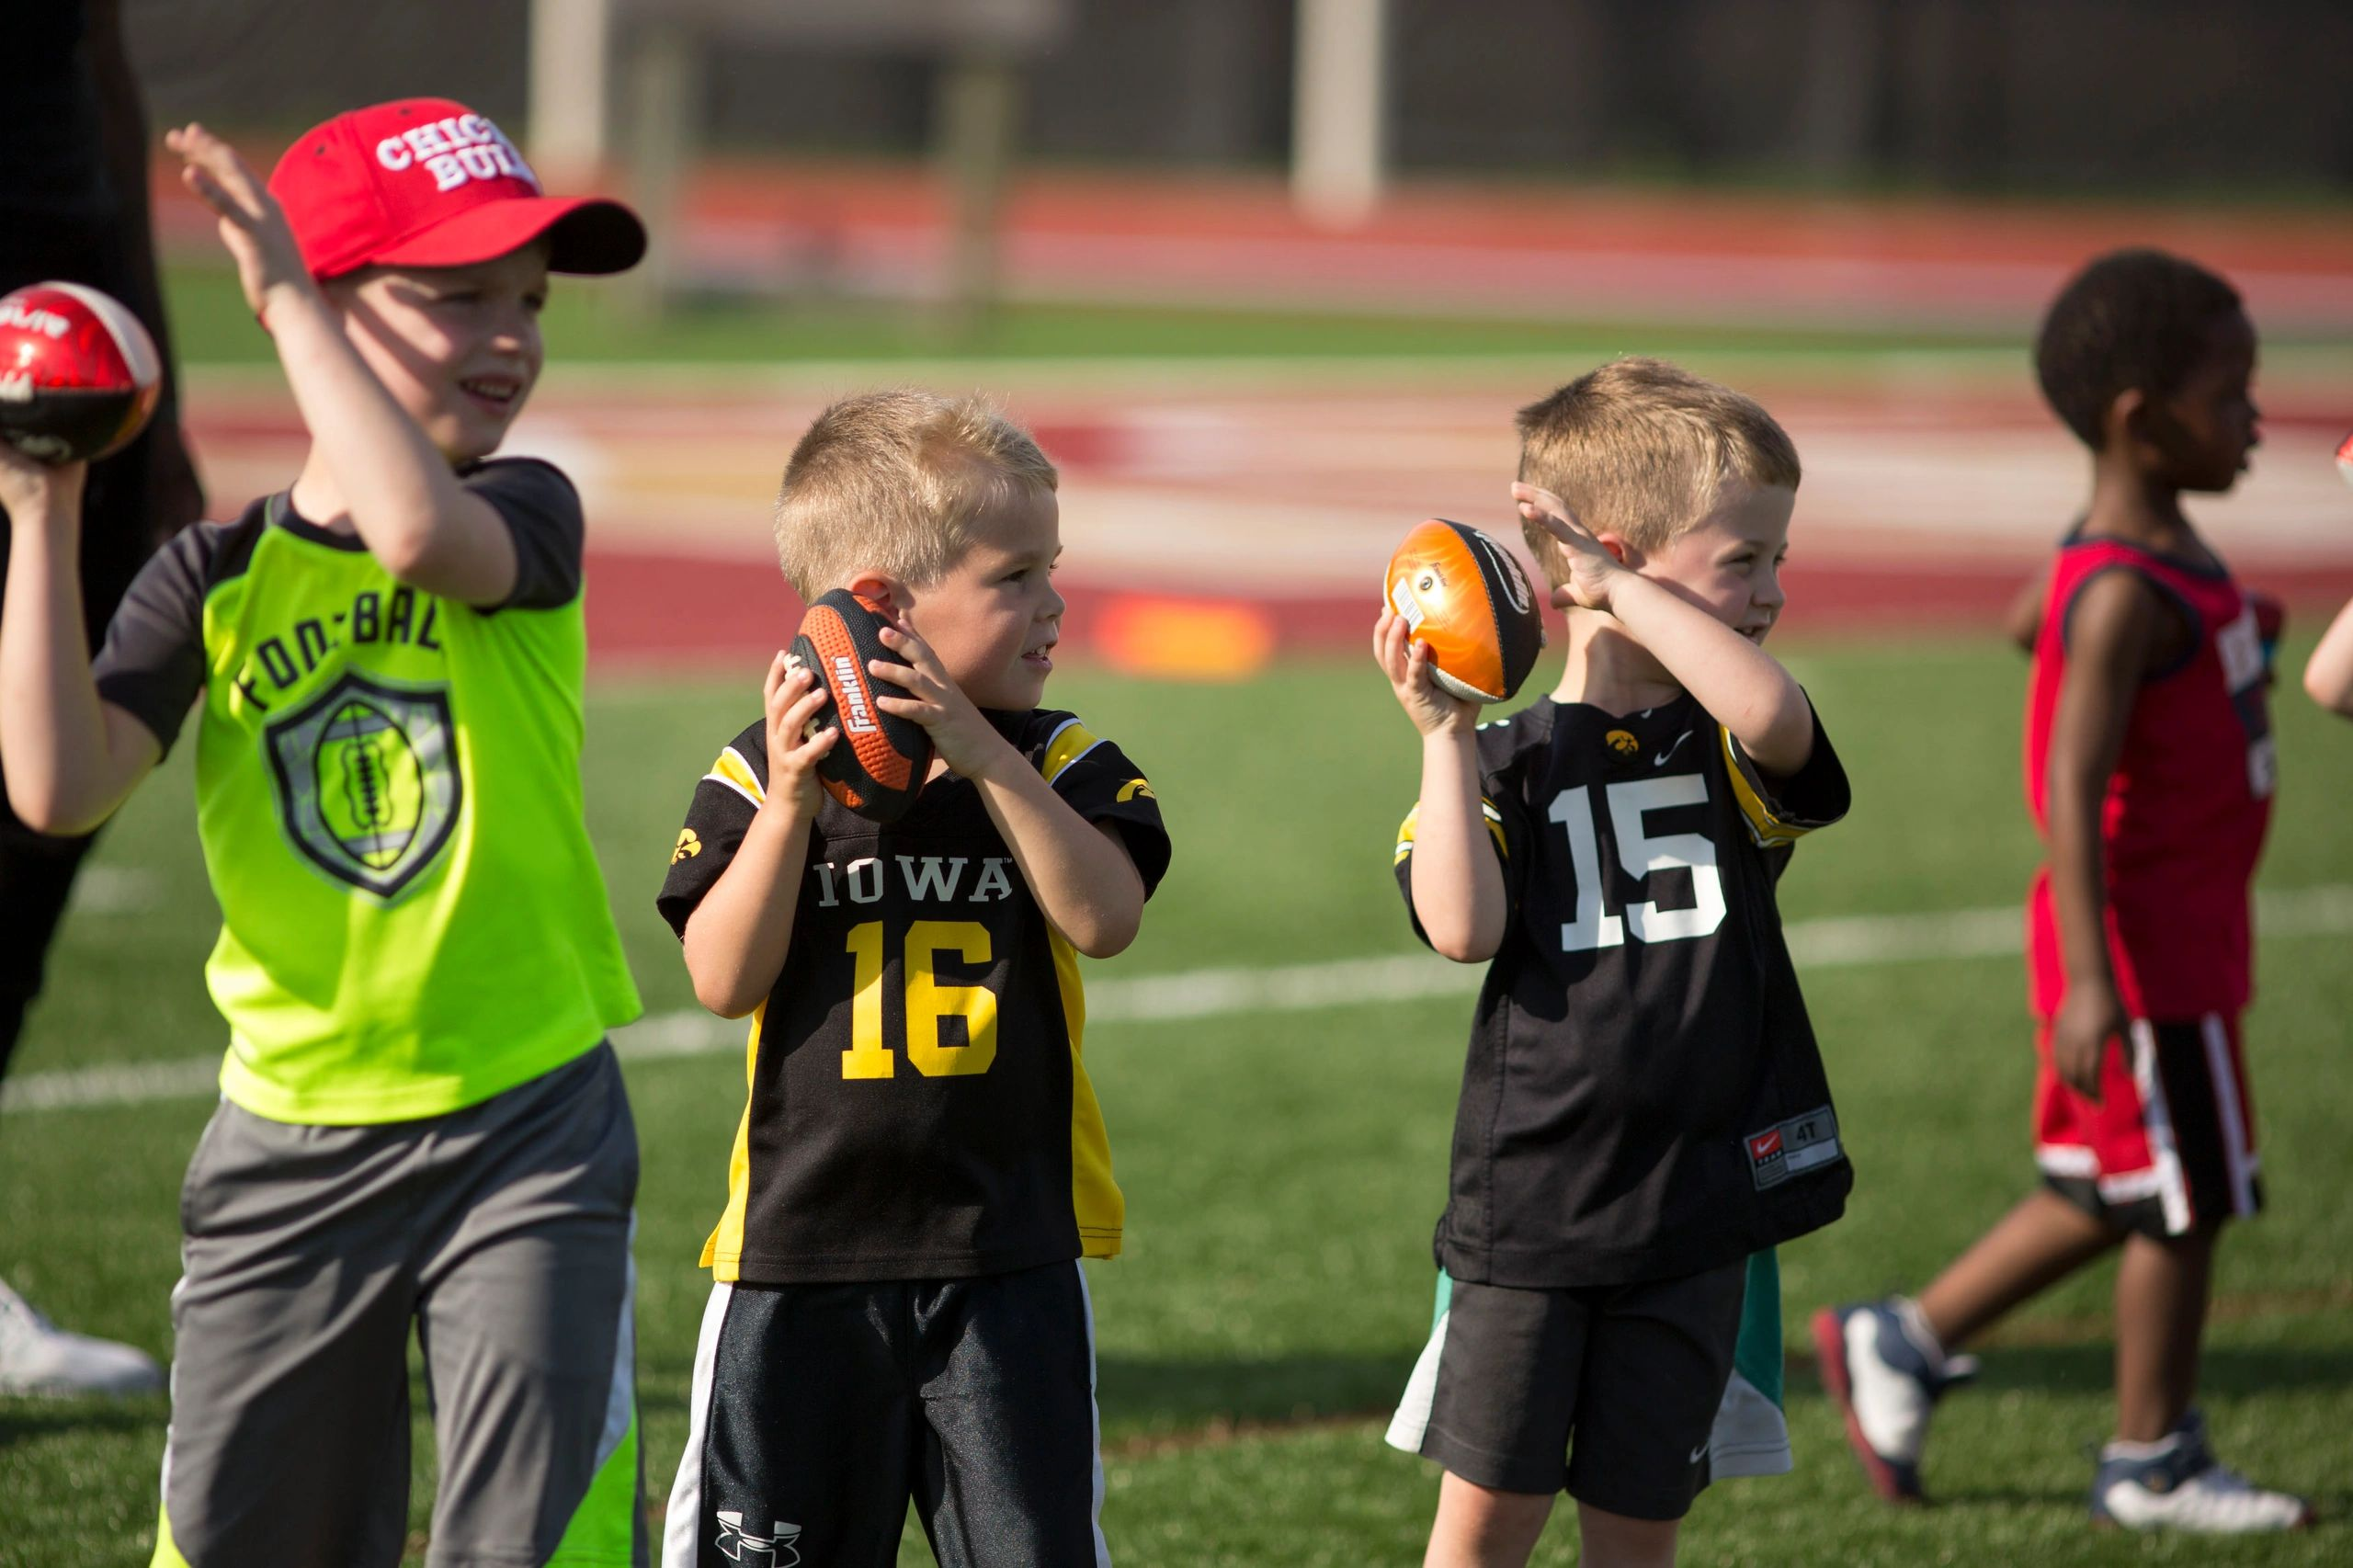 Little Sports Torts, Football, Soccer, Basketball, Preschool Sports, Hockey, Lacrosse, Active Kids